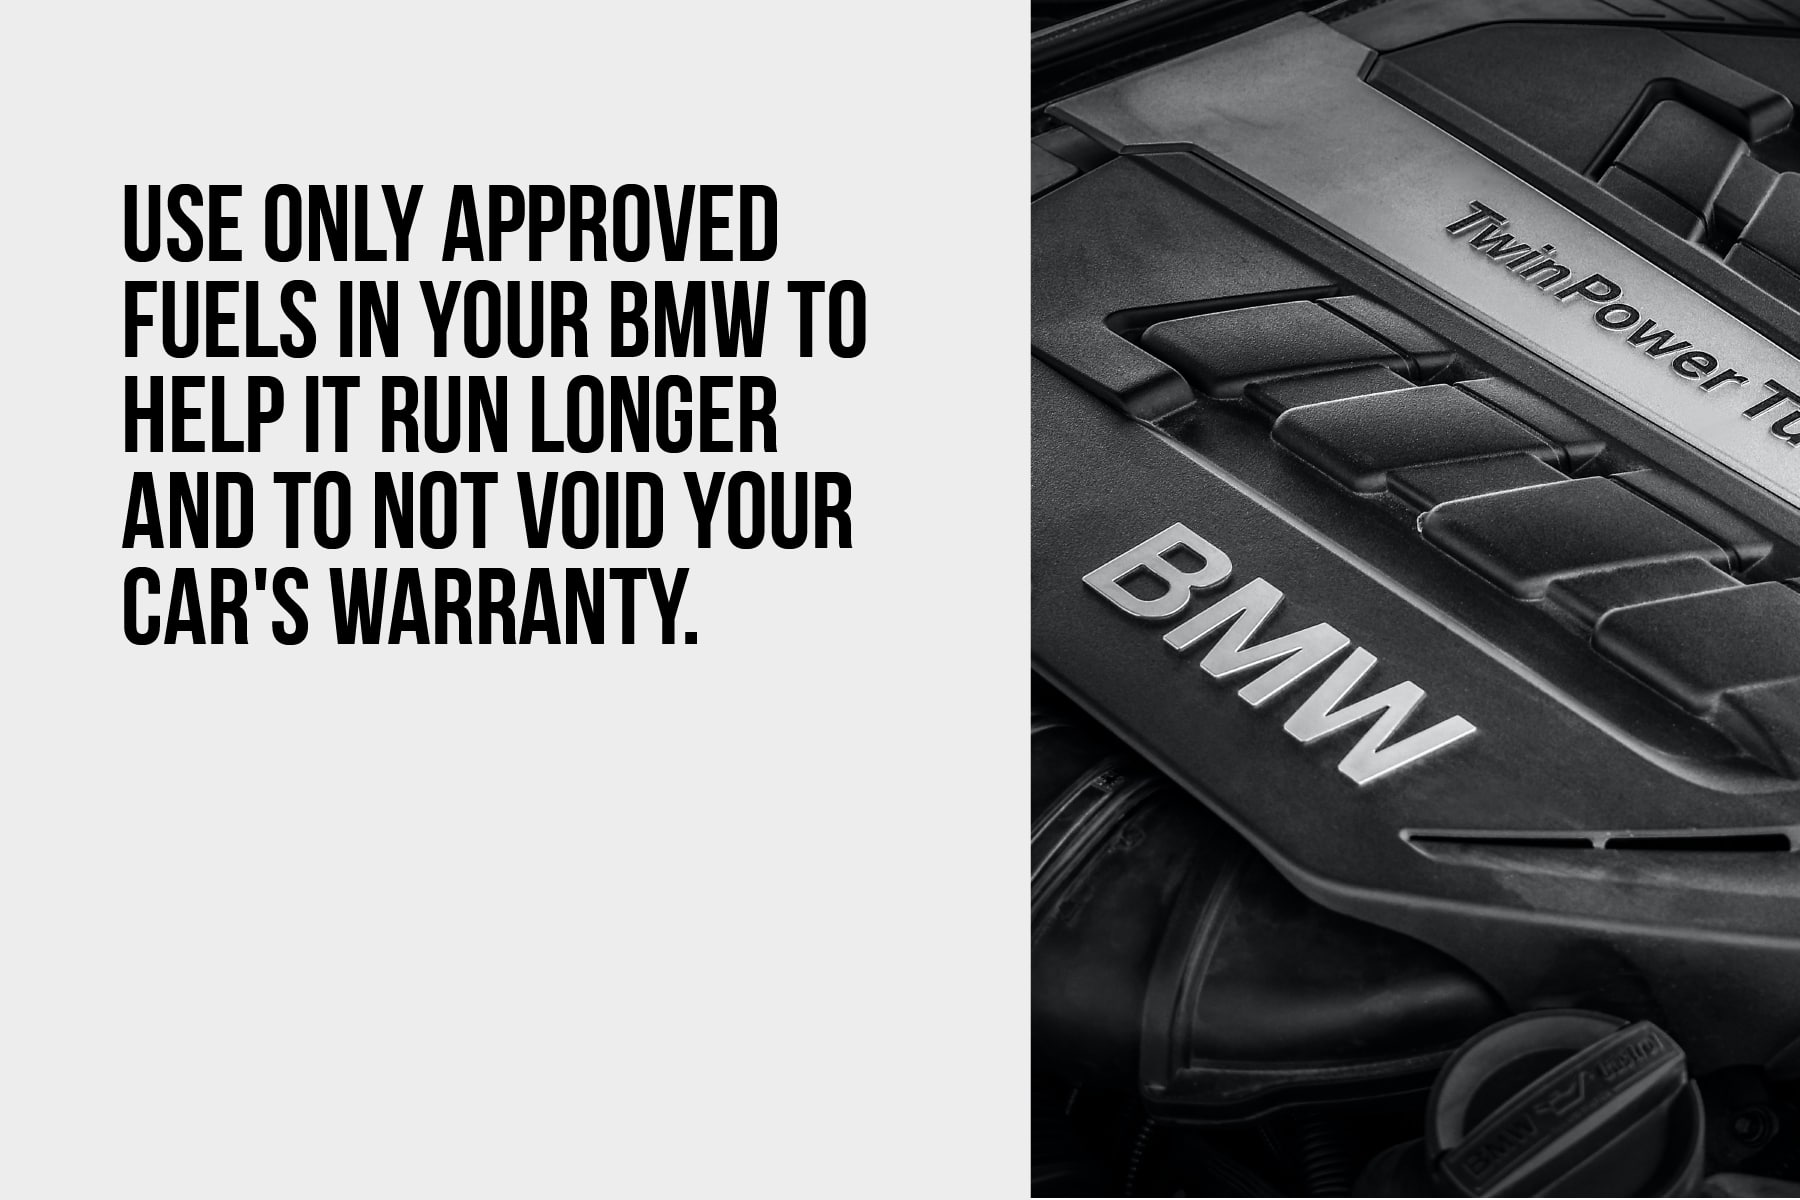 only use approved fuels in your BMW